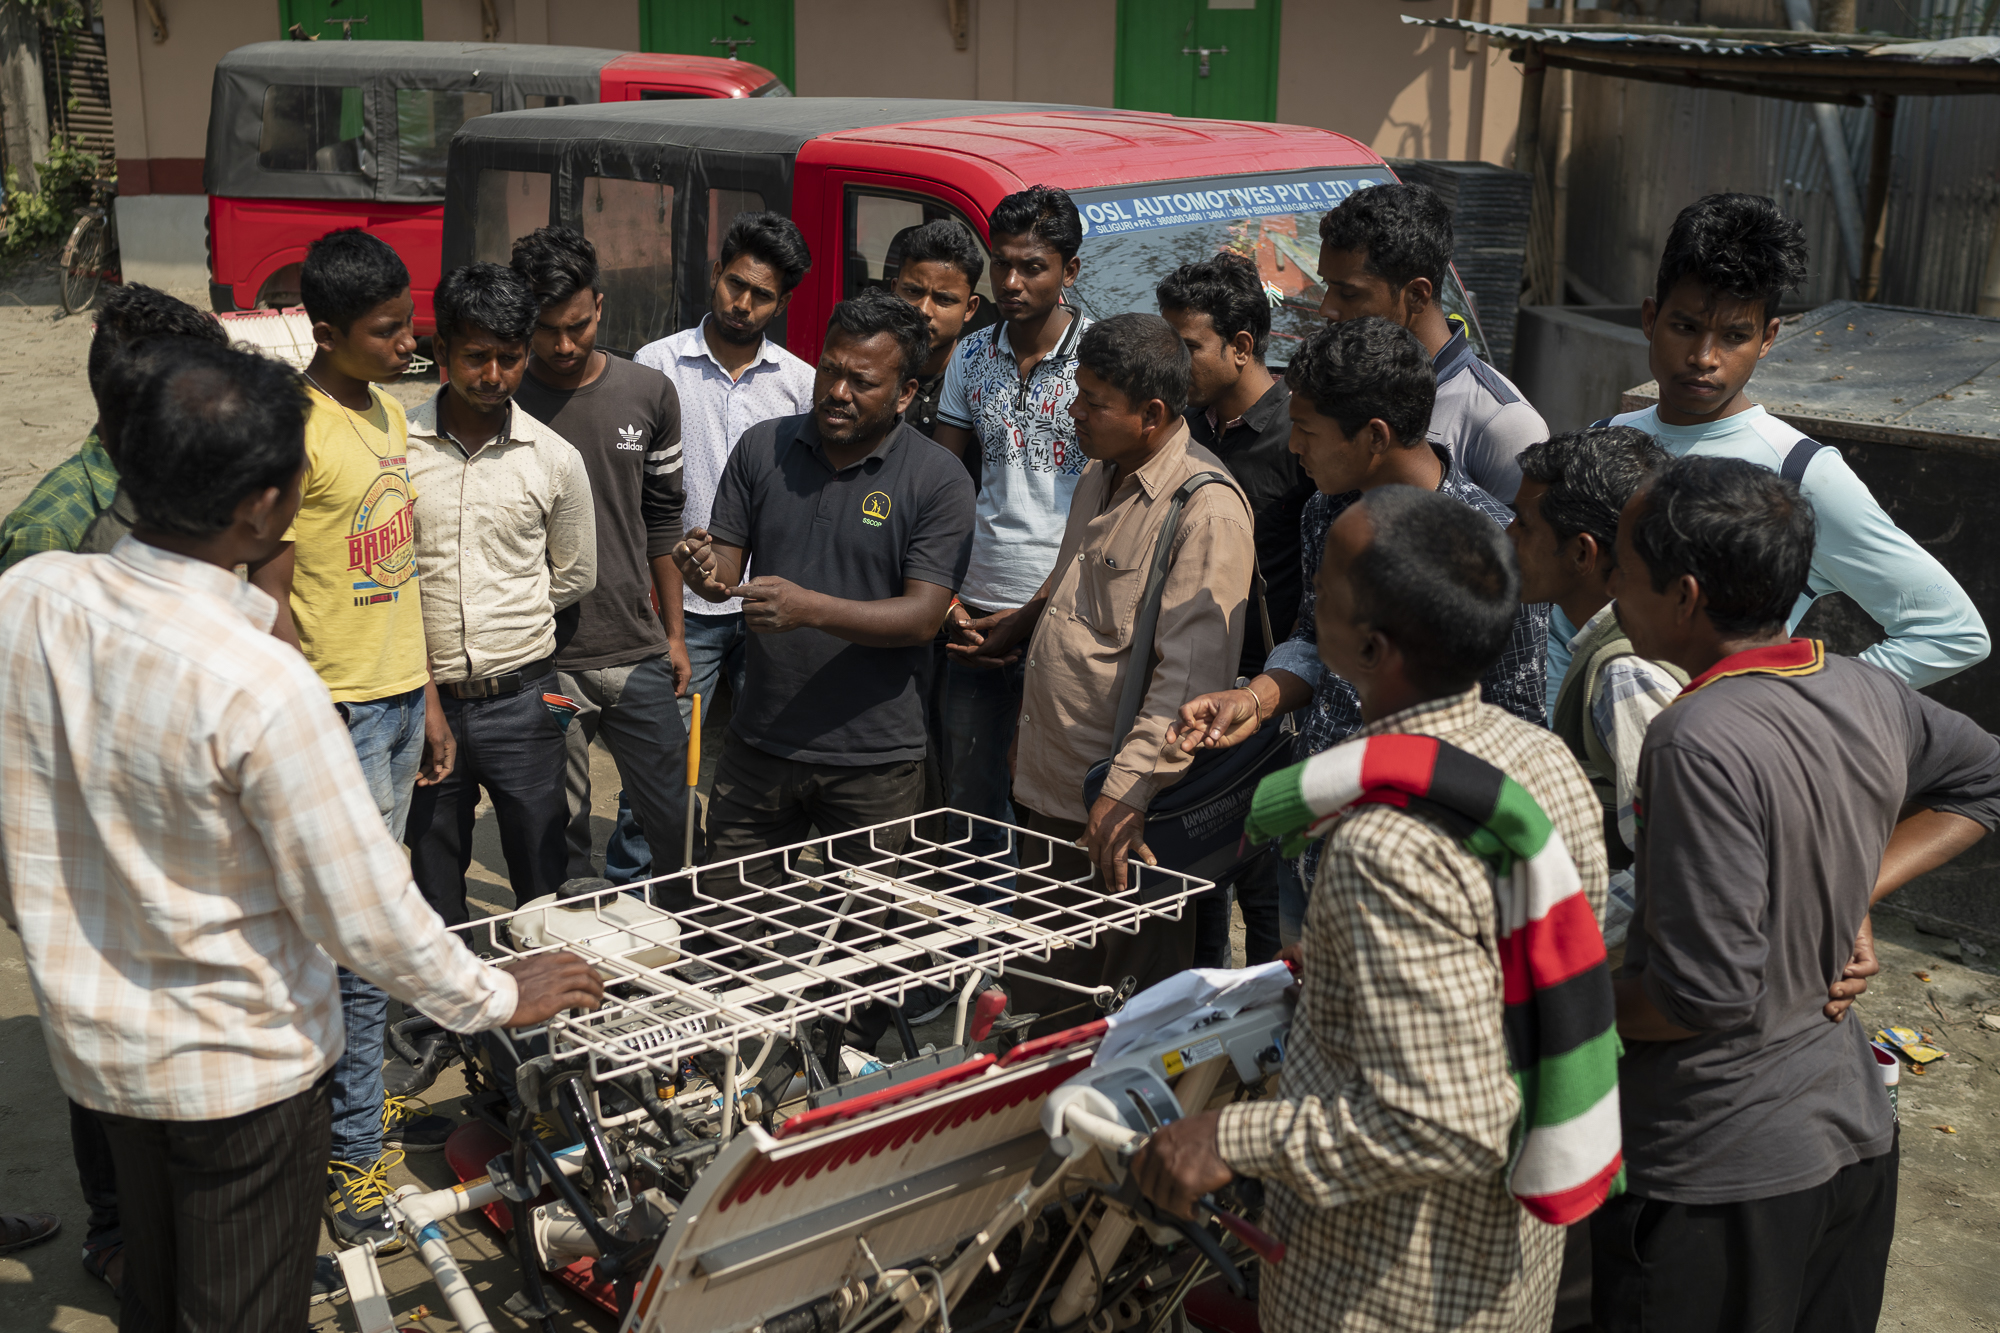 Staff from Satmile Satish Club share information with farmers and machine operators interested in using a mechanical rice transplanter as part of their machinery portfolio.